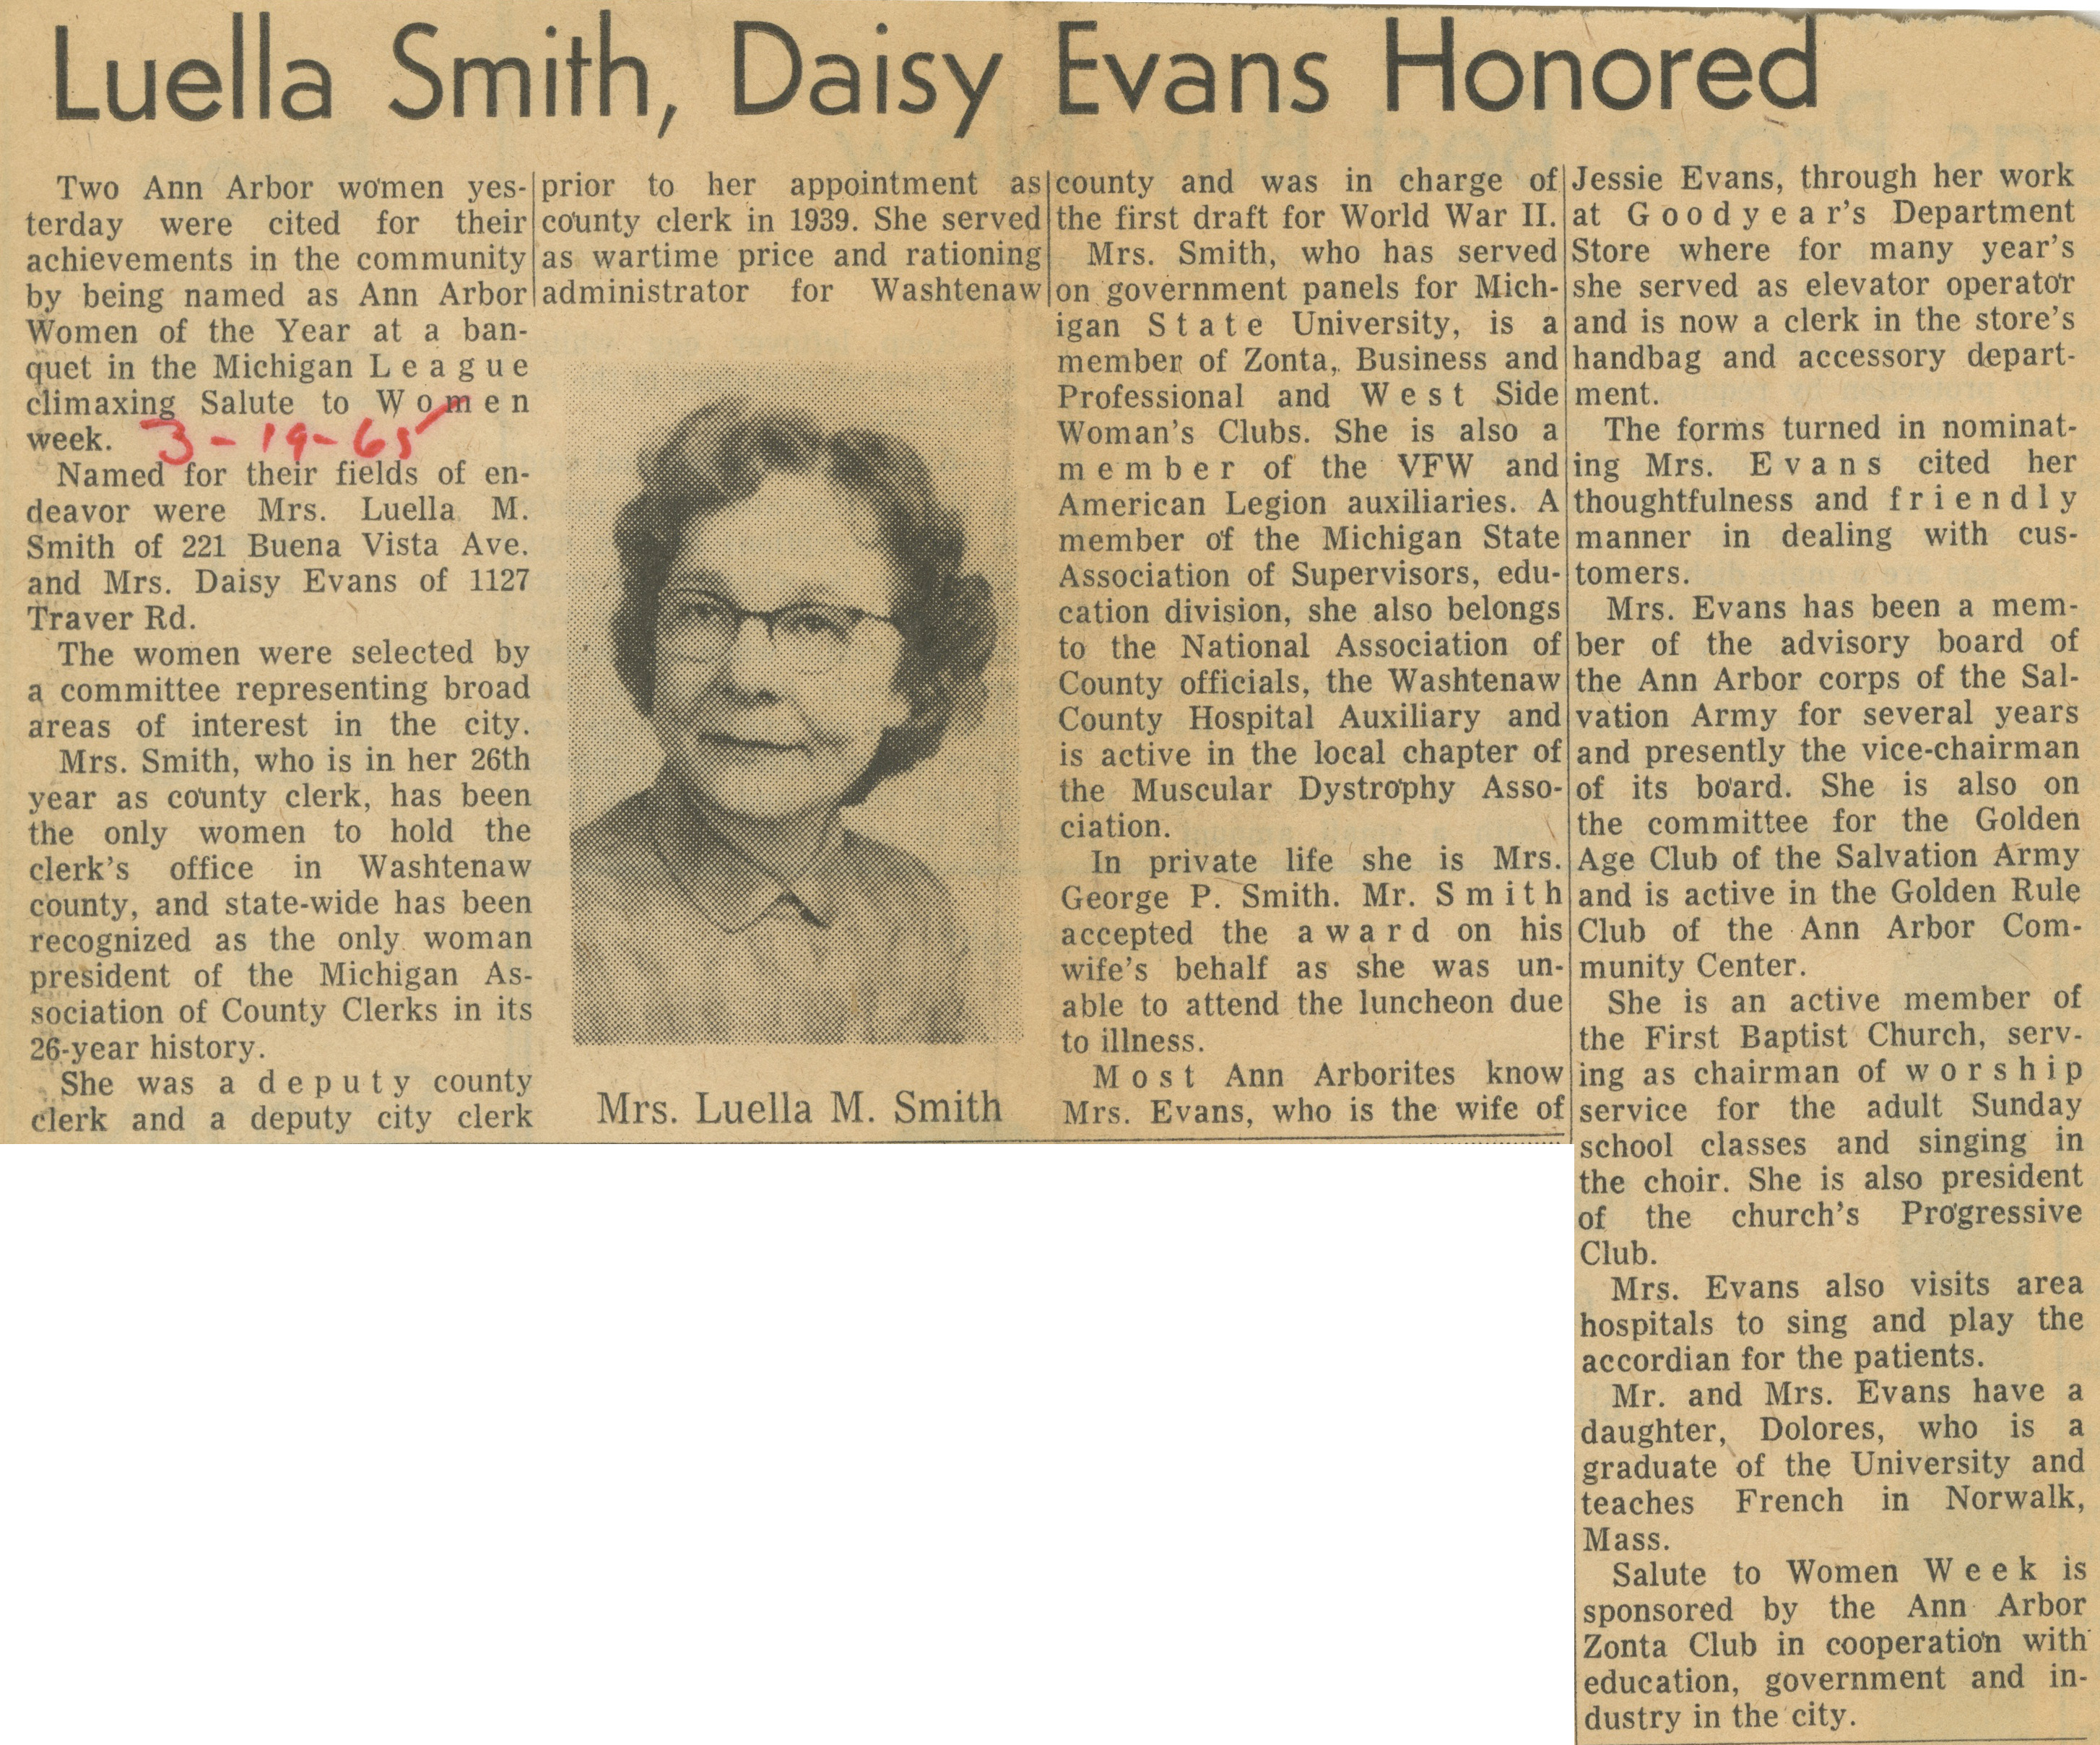 Luella Smith, Daisy Evans Honored image